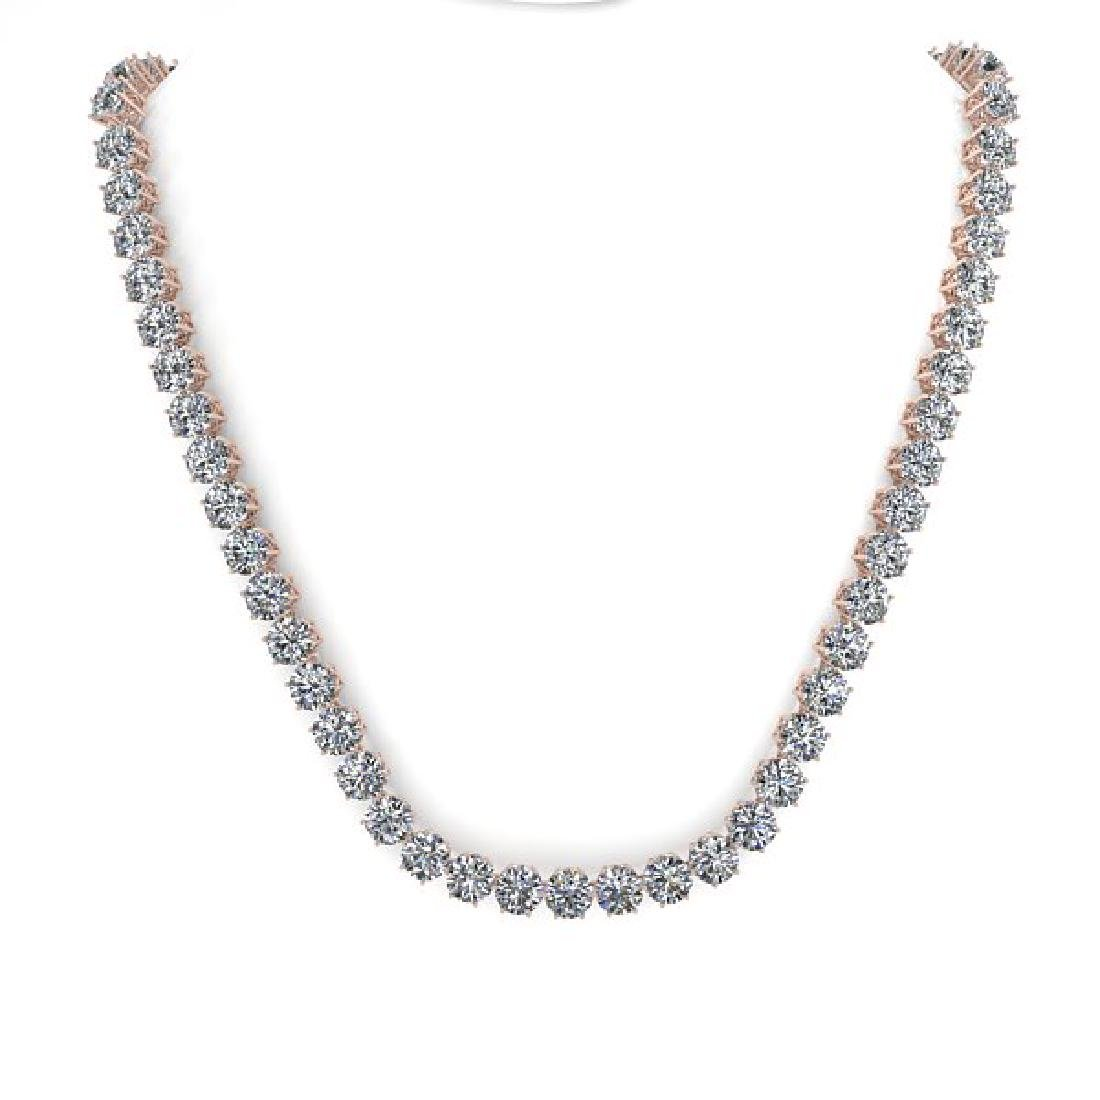 29 CTW SI Certified Diamond Necklace 18K Rose Gold - 3